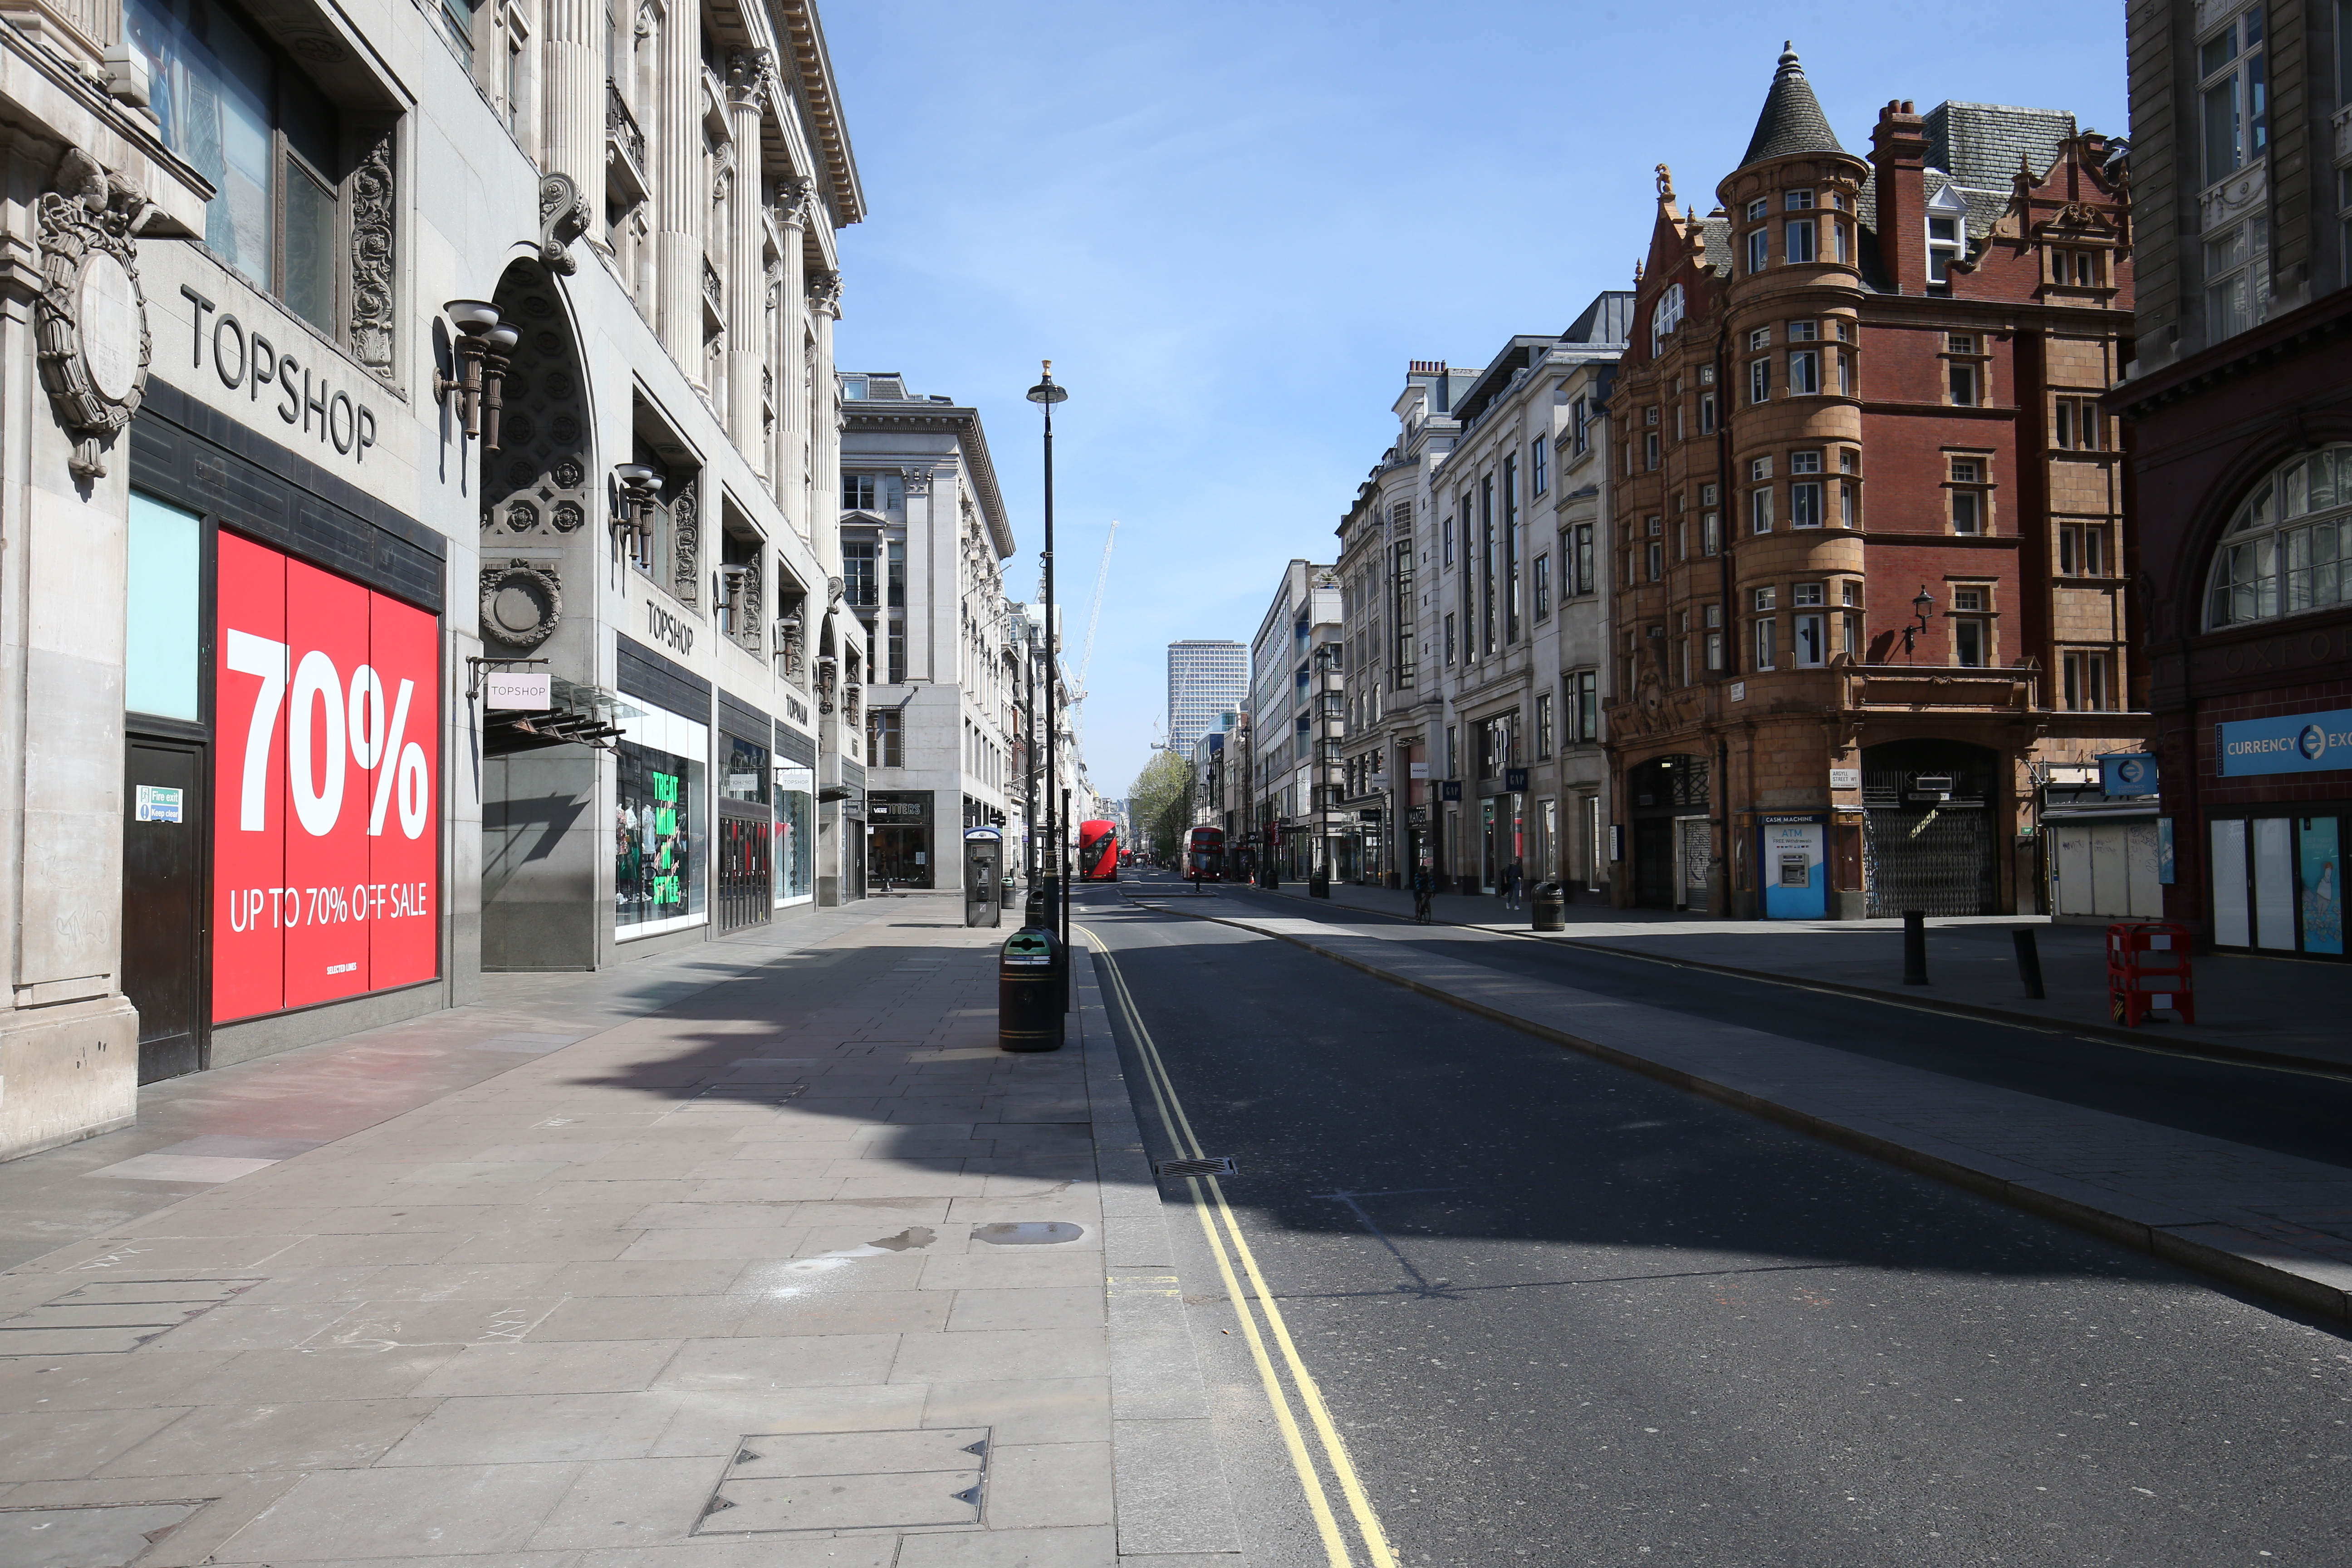 A view along Oxford Street, London, looking from Oxford Circus towards Centrepoint, as the UK continues in lockdown to help curb the spread of the coronavirus.